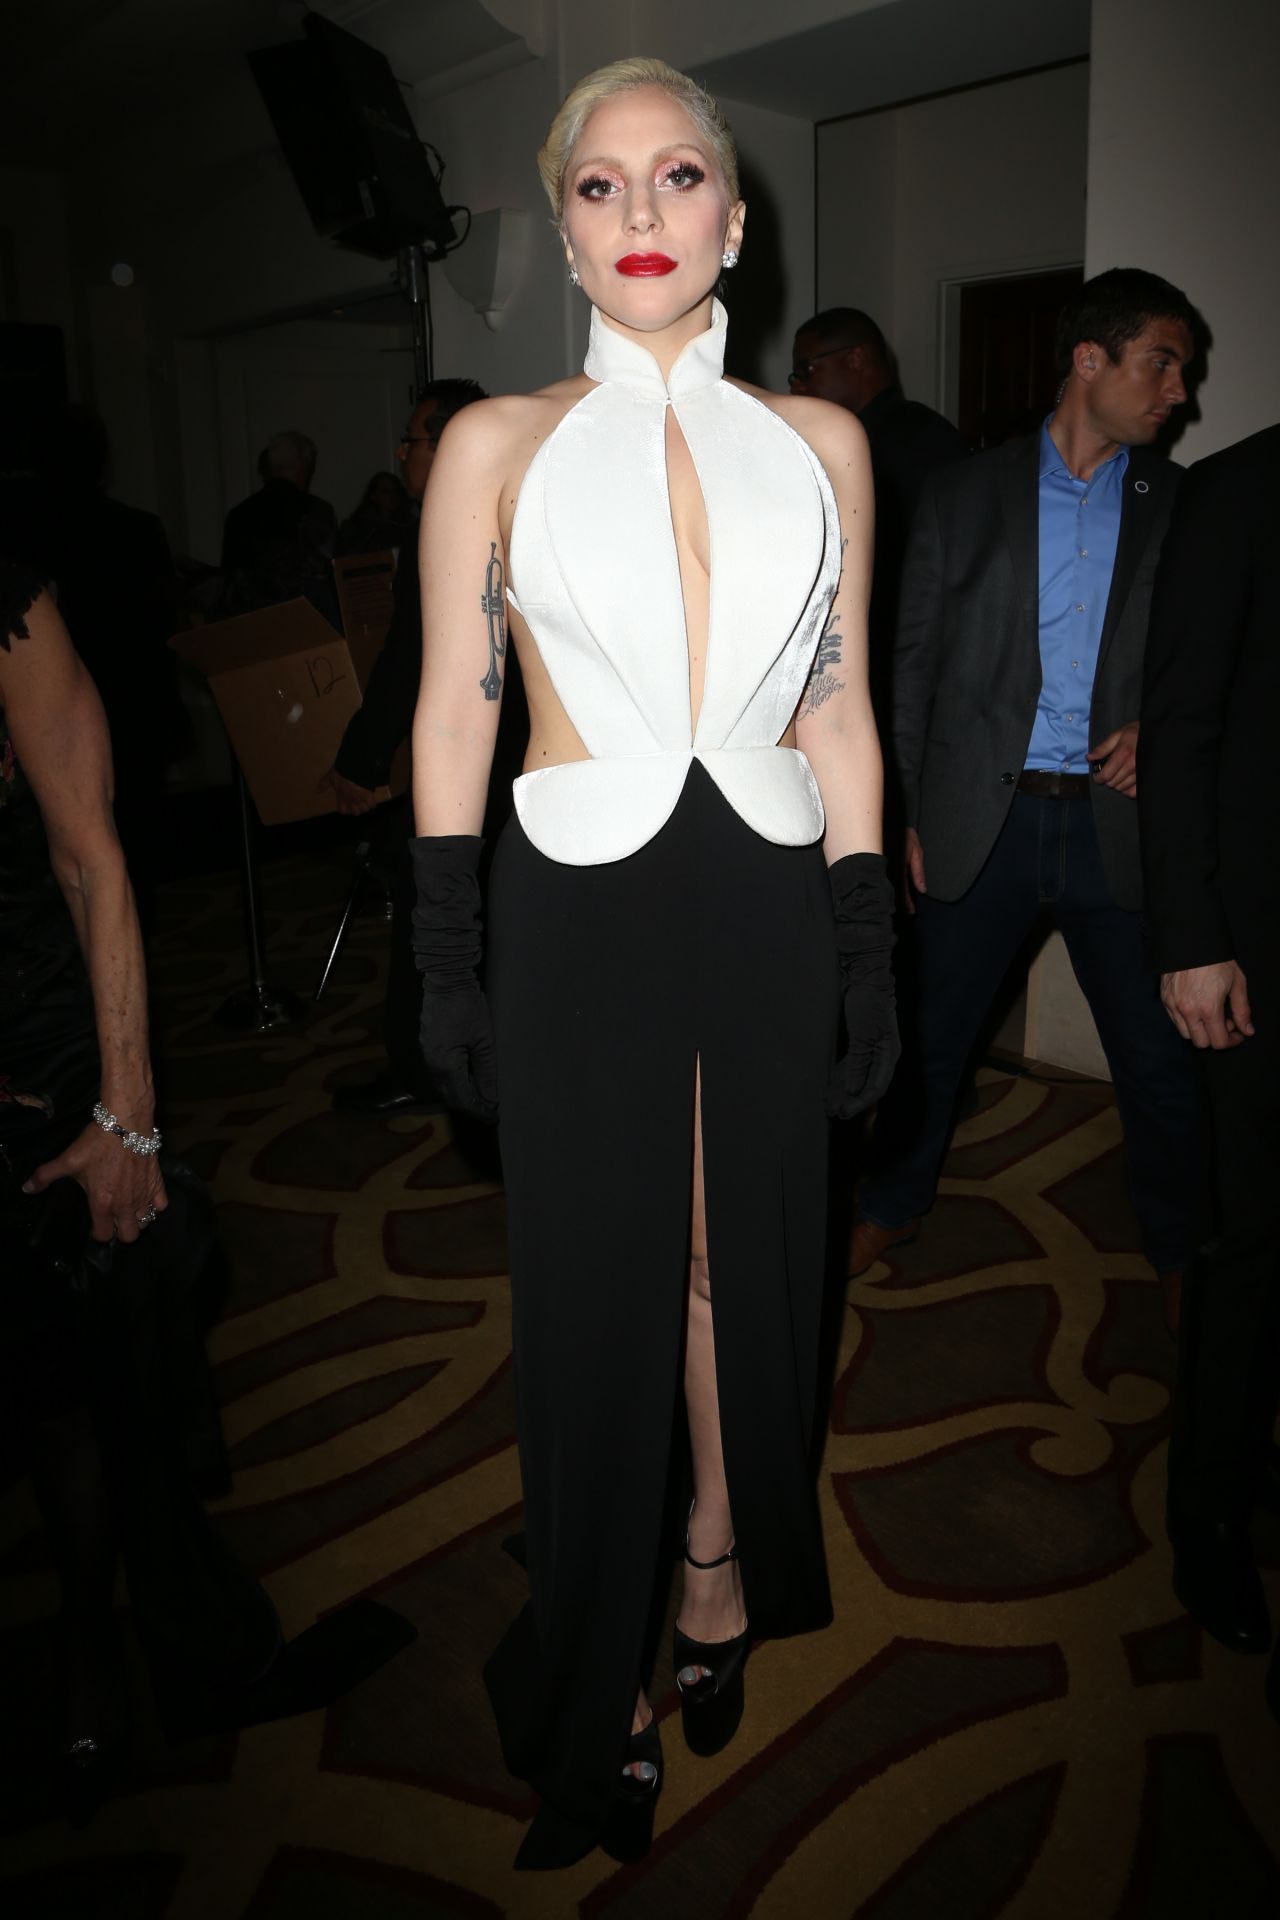 lady-gaga-weinstein-company-s-pre-oscar-dinner-in-beverly-hills-2-27-2016-5